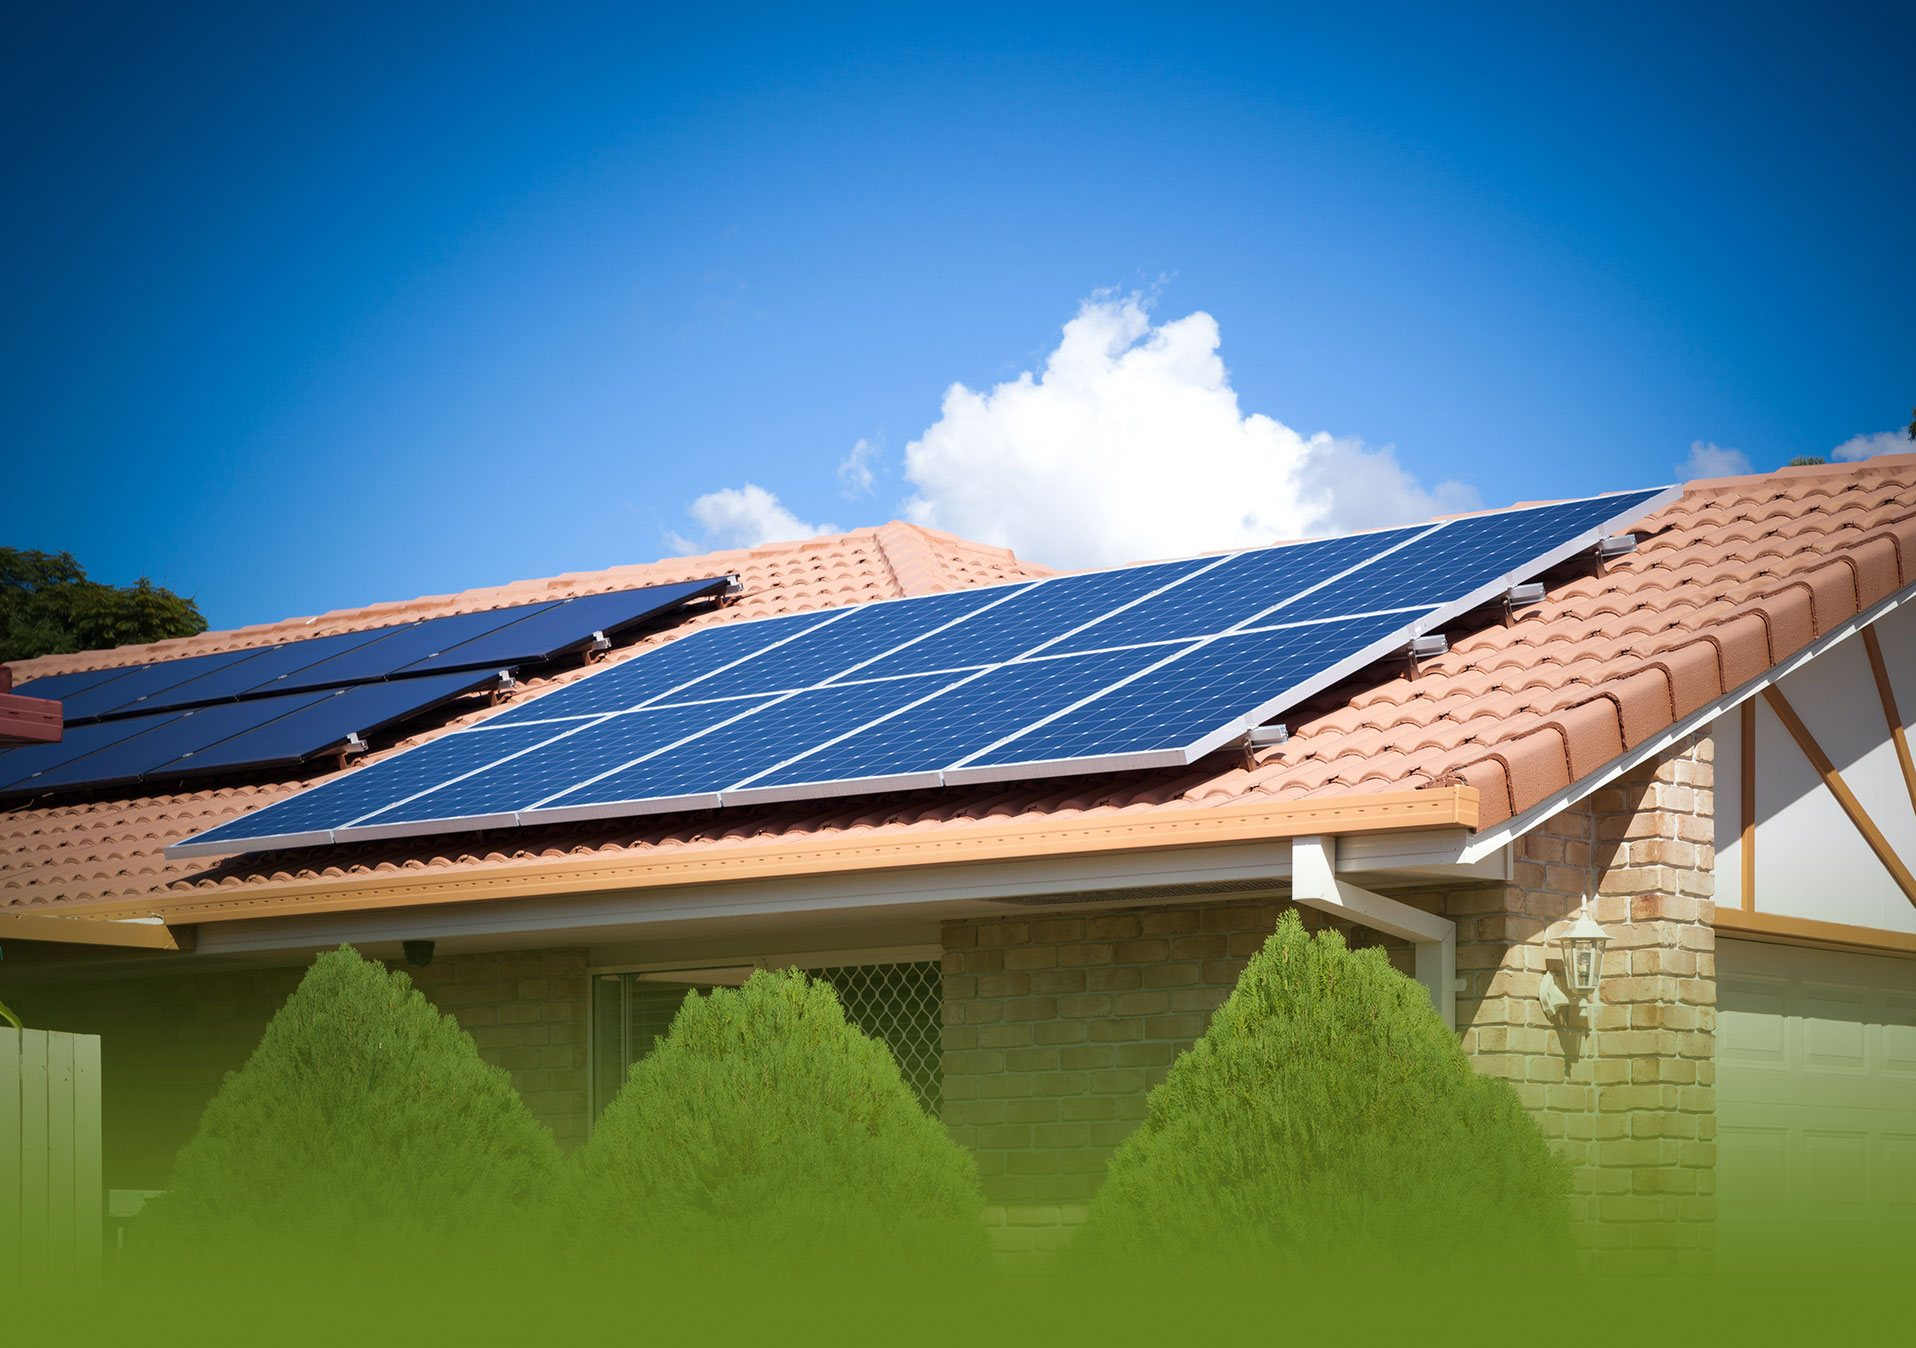 Solar energy in South Africa